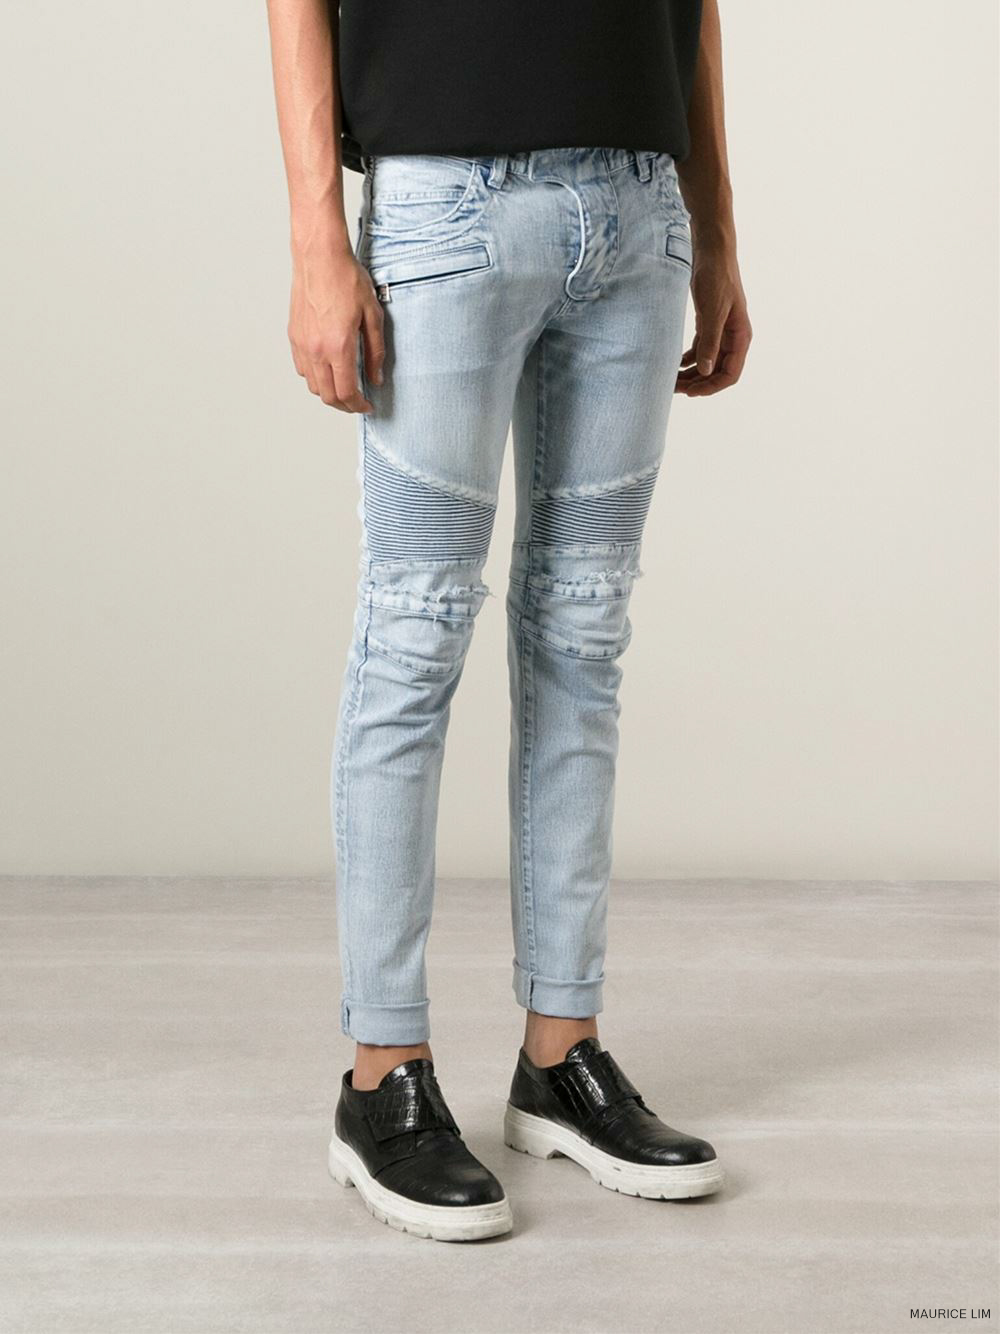 Balmain Spring Summer 2015 Biker Jeans And Trousers Size